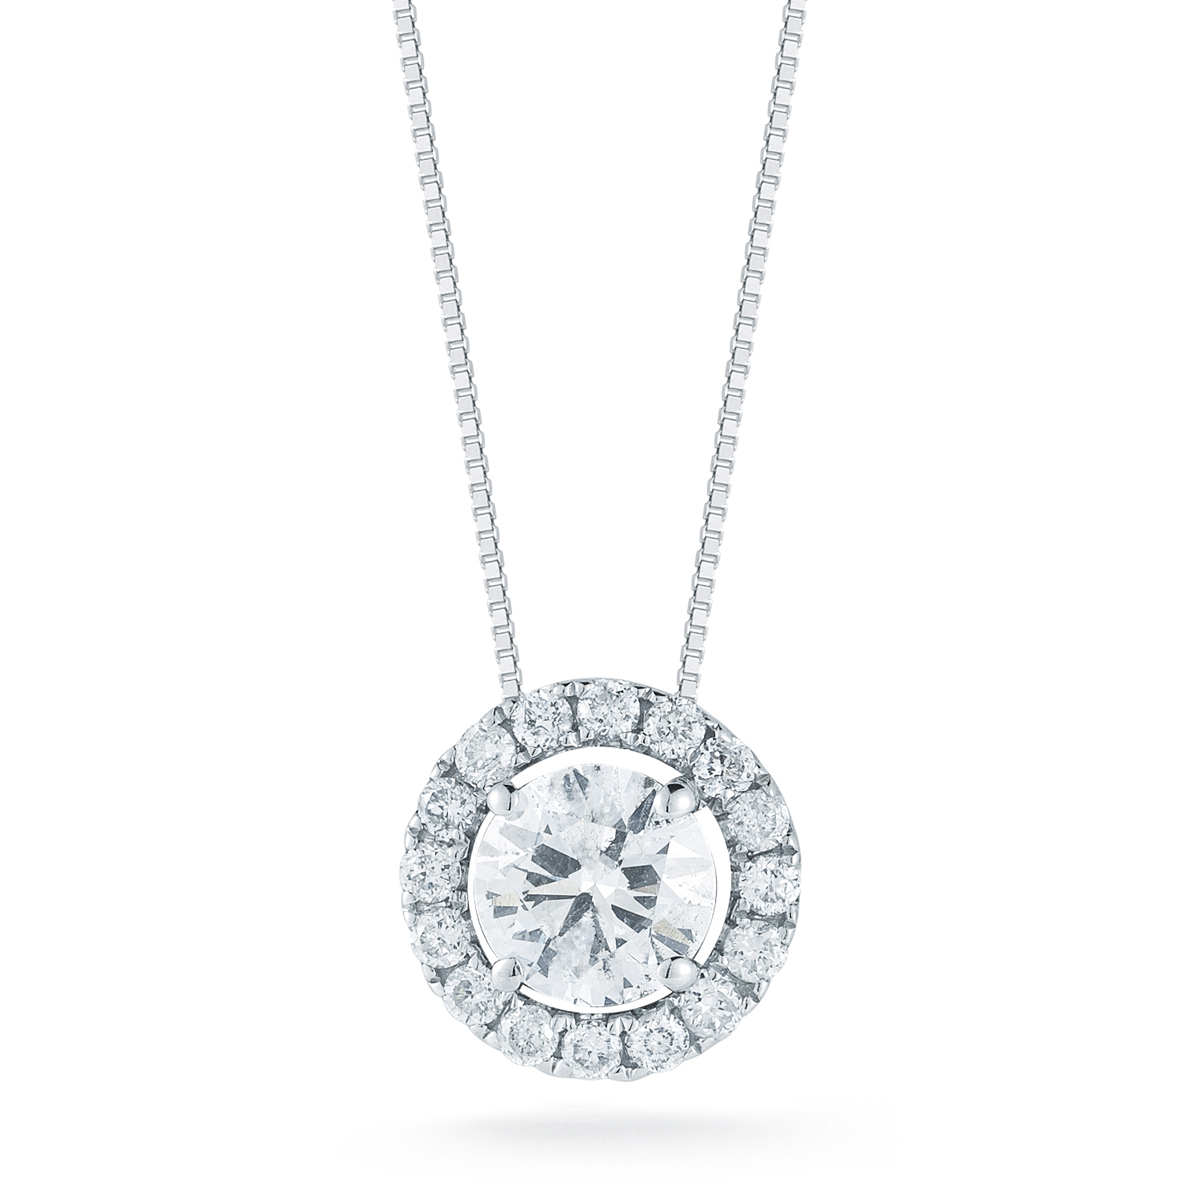 Paramount Gems 14 Karat White Gold Round Halo Diamond Pendant Necklace